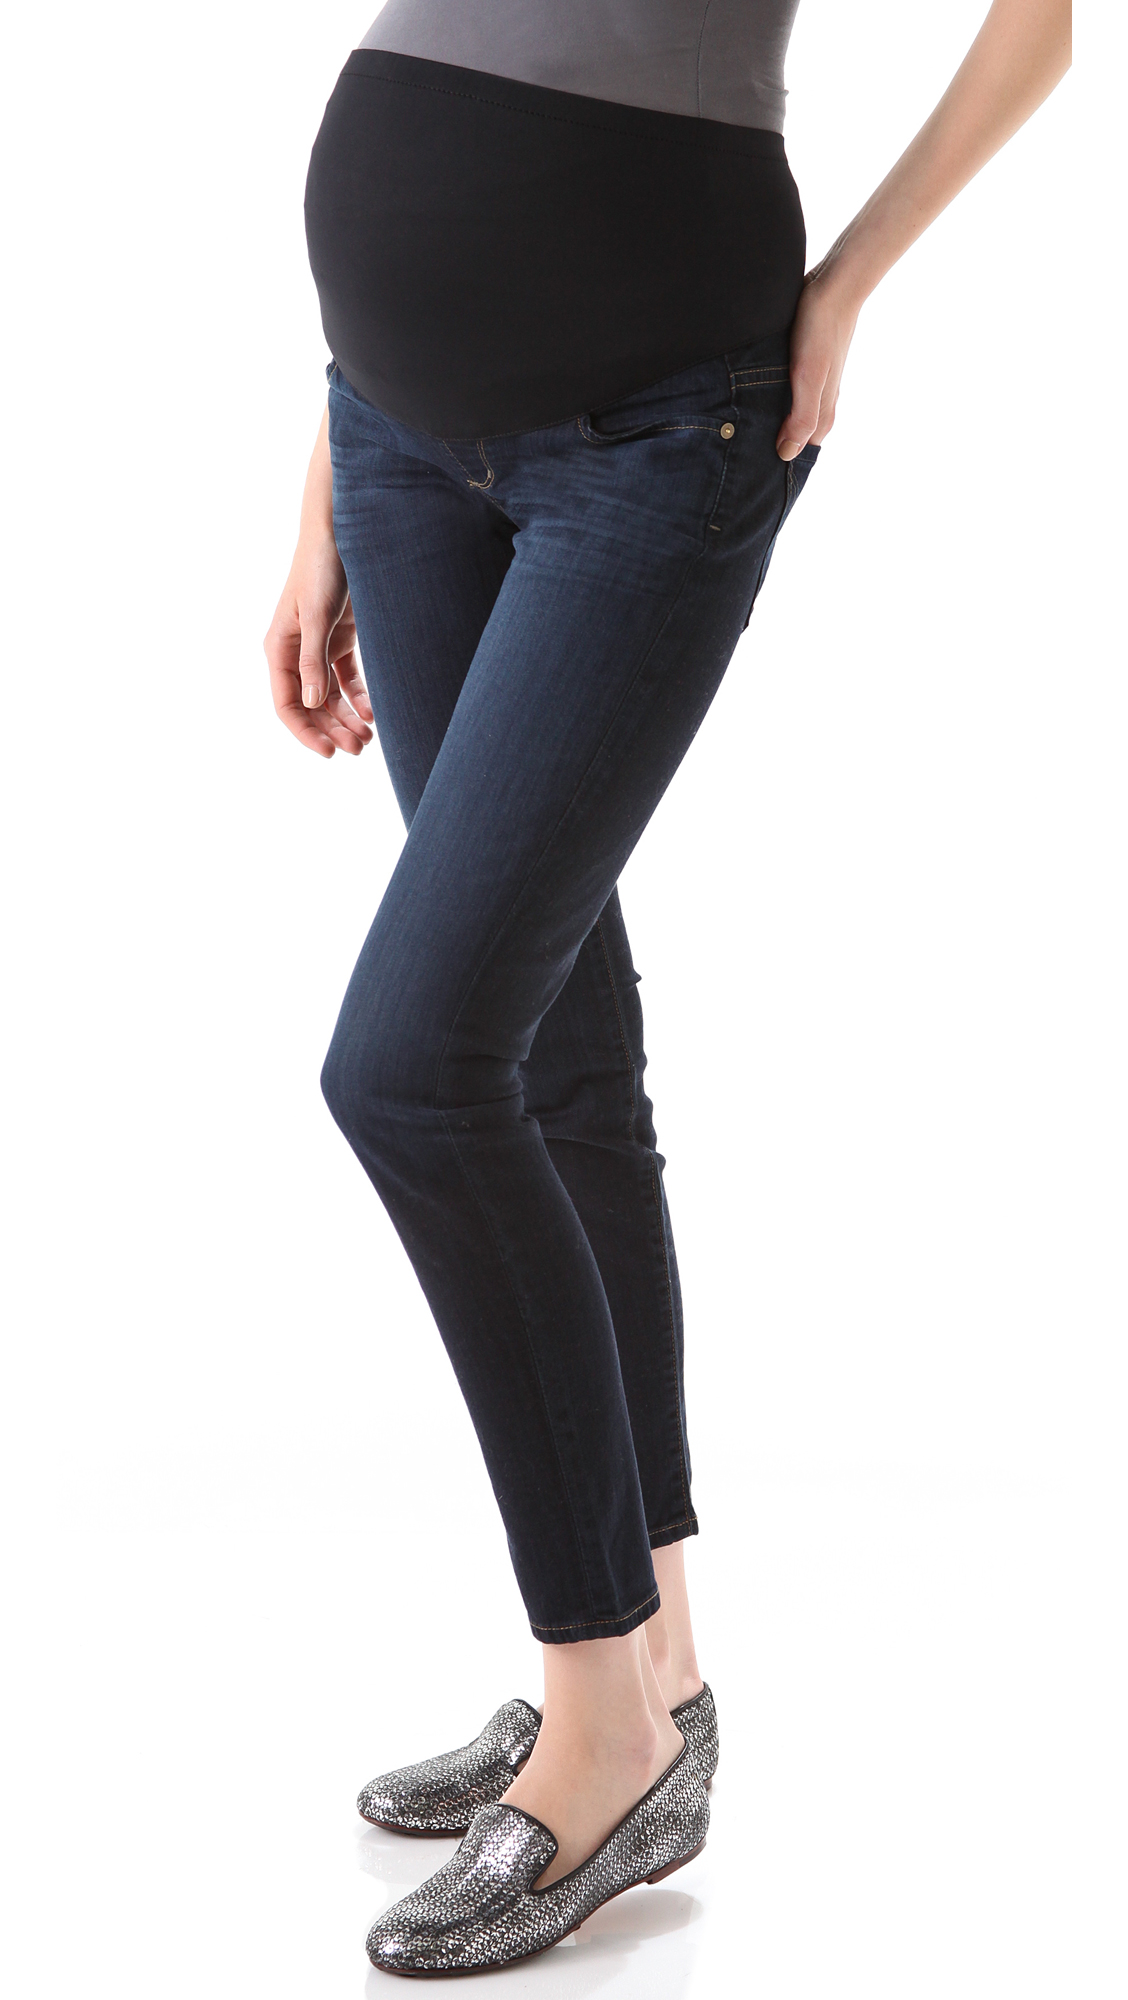 Citizens of Humanity Thompson Skinny Maternity Jeans | 15% off ...